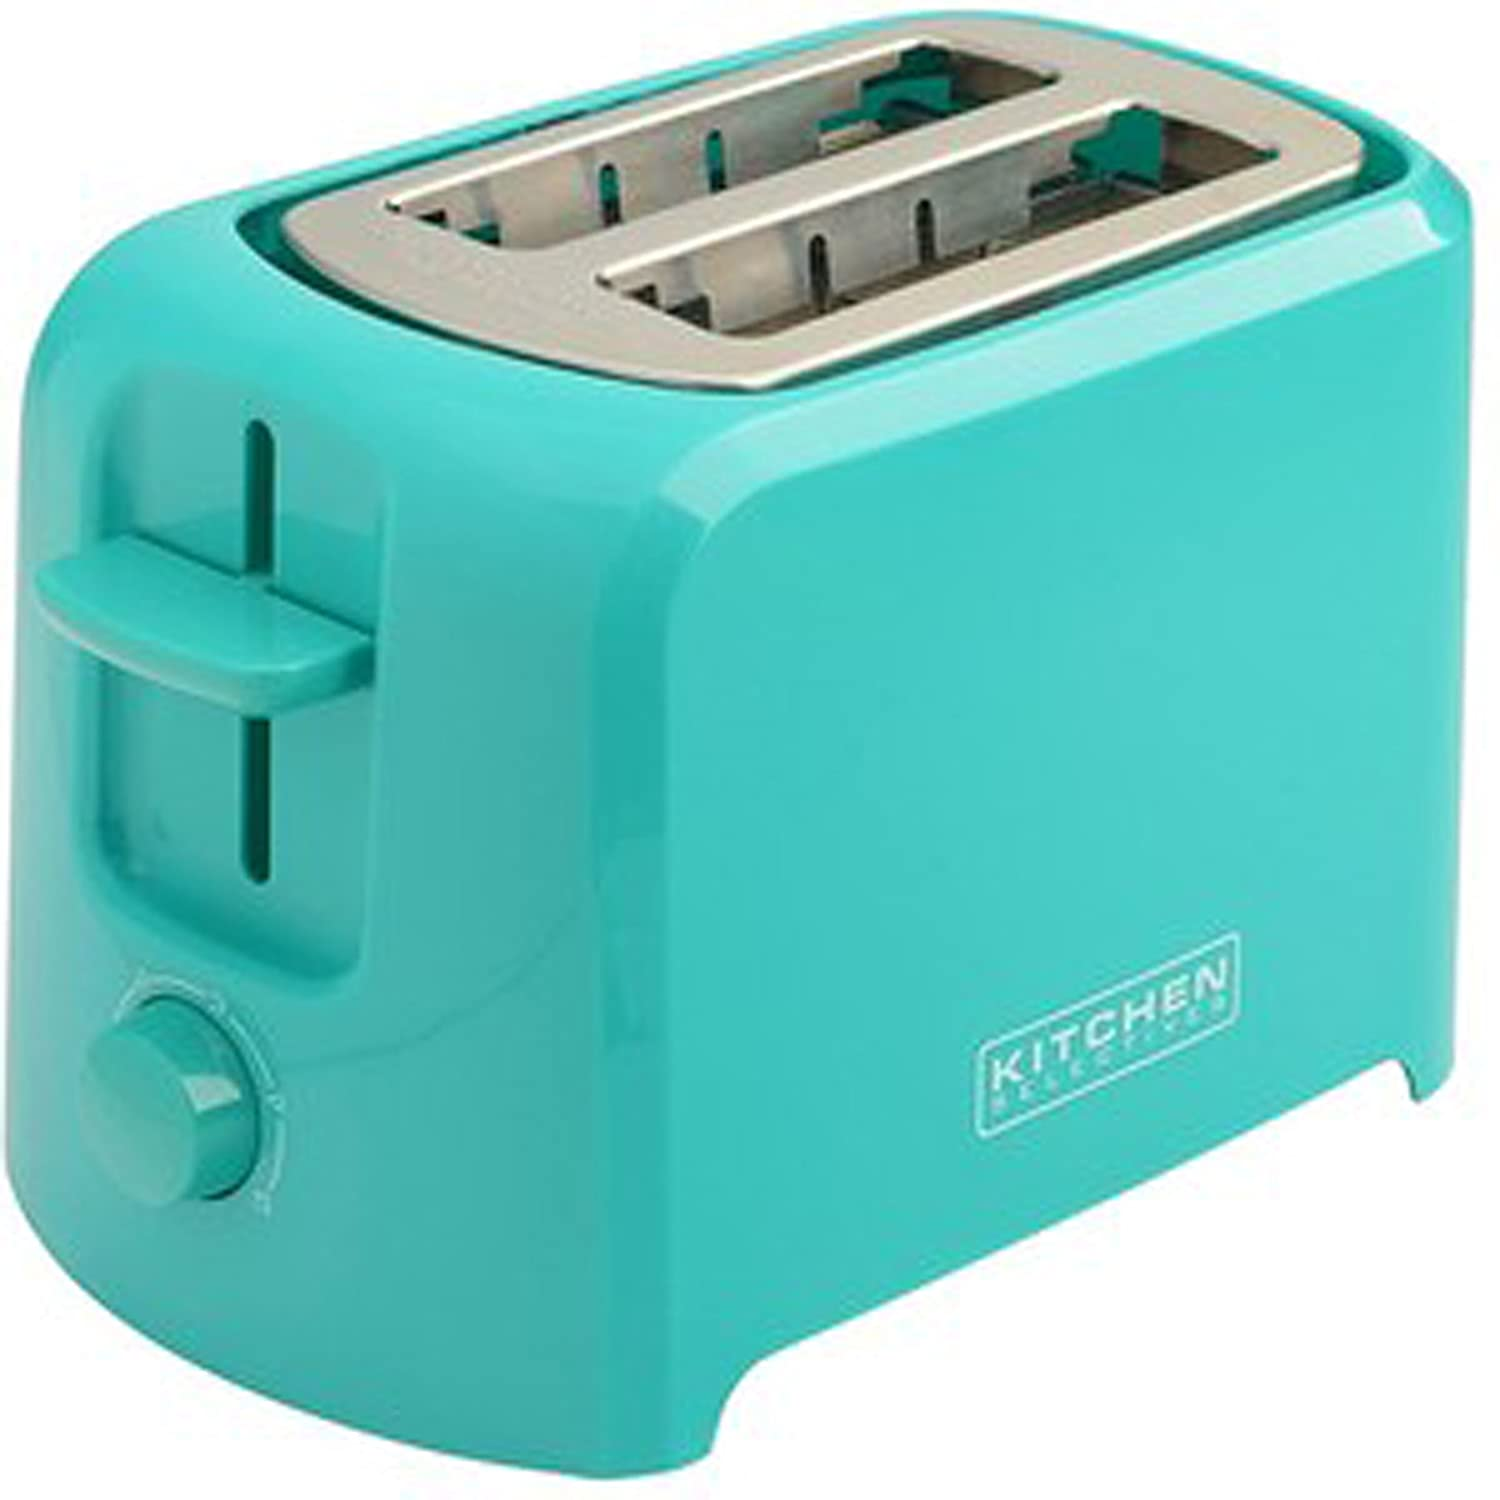 Kitchen Selectives Cool-Touch 2 Slice Toaster - Teal by Kitchen Selectives Select Brands Inc COMINHKPR38230